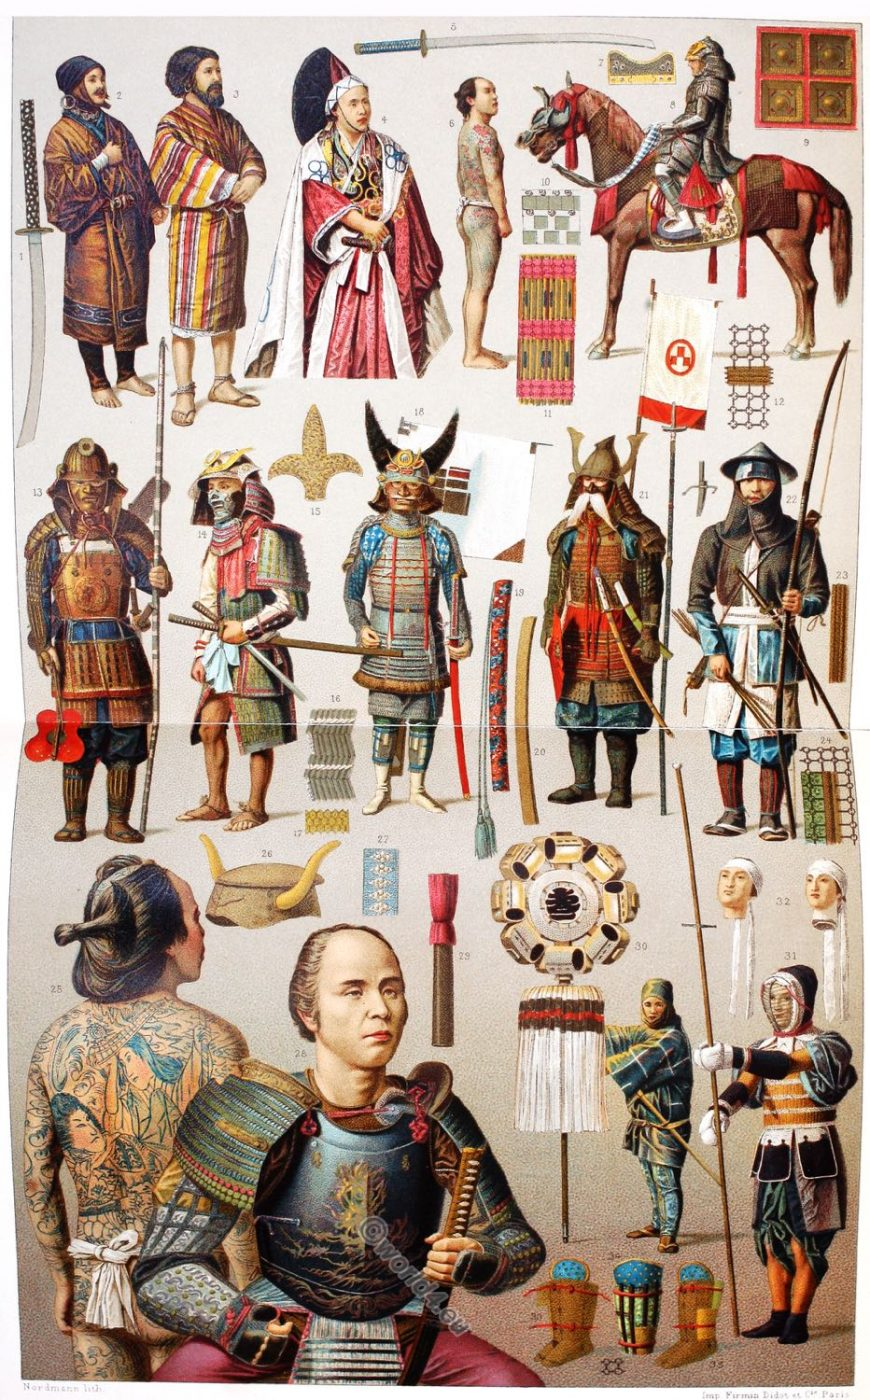 Japan, weapons, Armor, Culture, Costumes, clothing, Ainu, Japanese